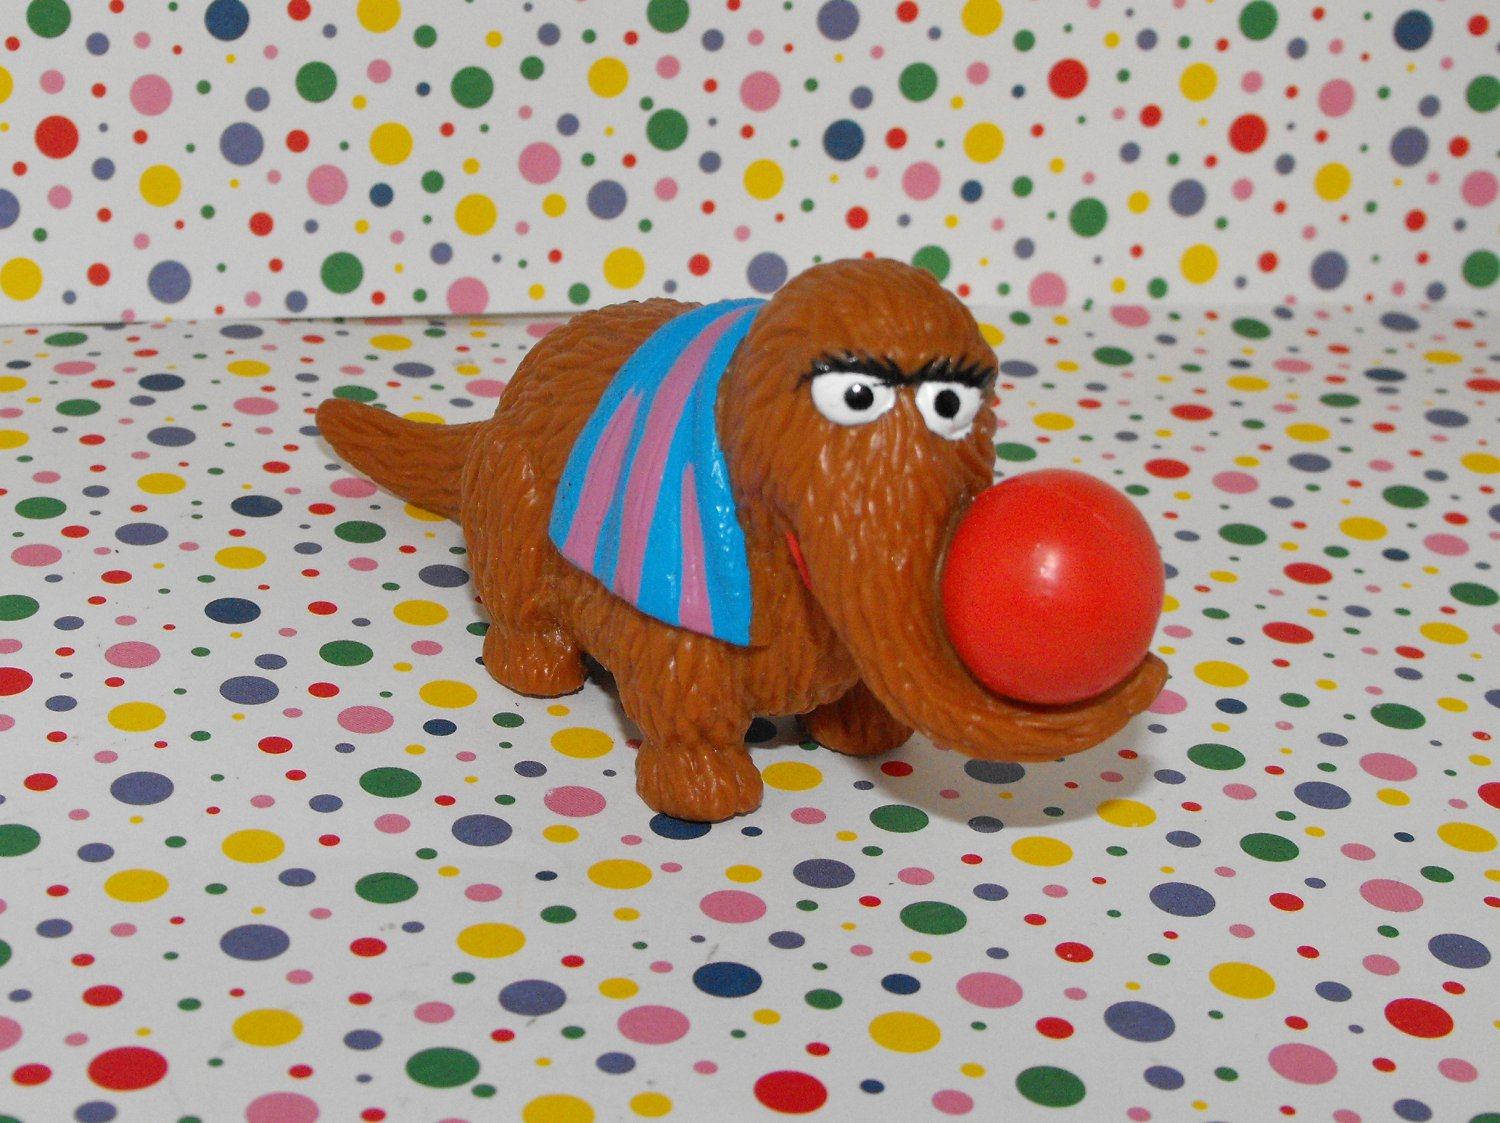 12*SOLD~Snuffleupagus PVC Figure Circus Performer Ball Applause